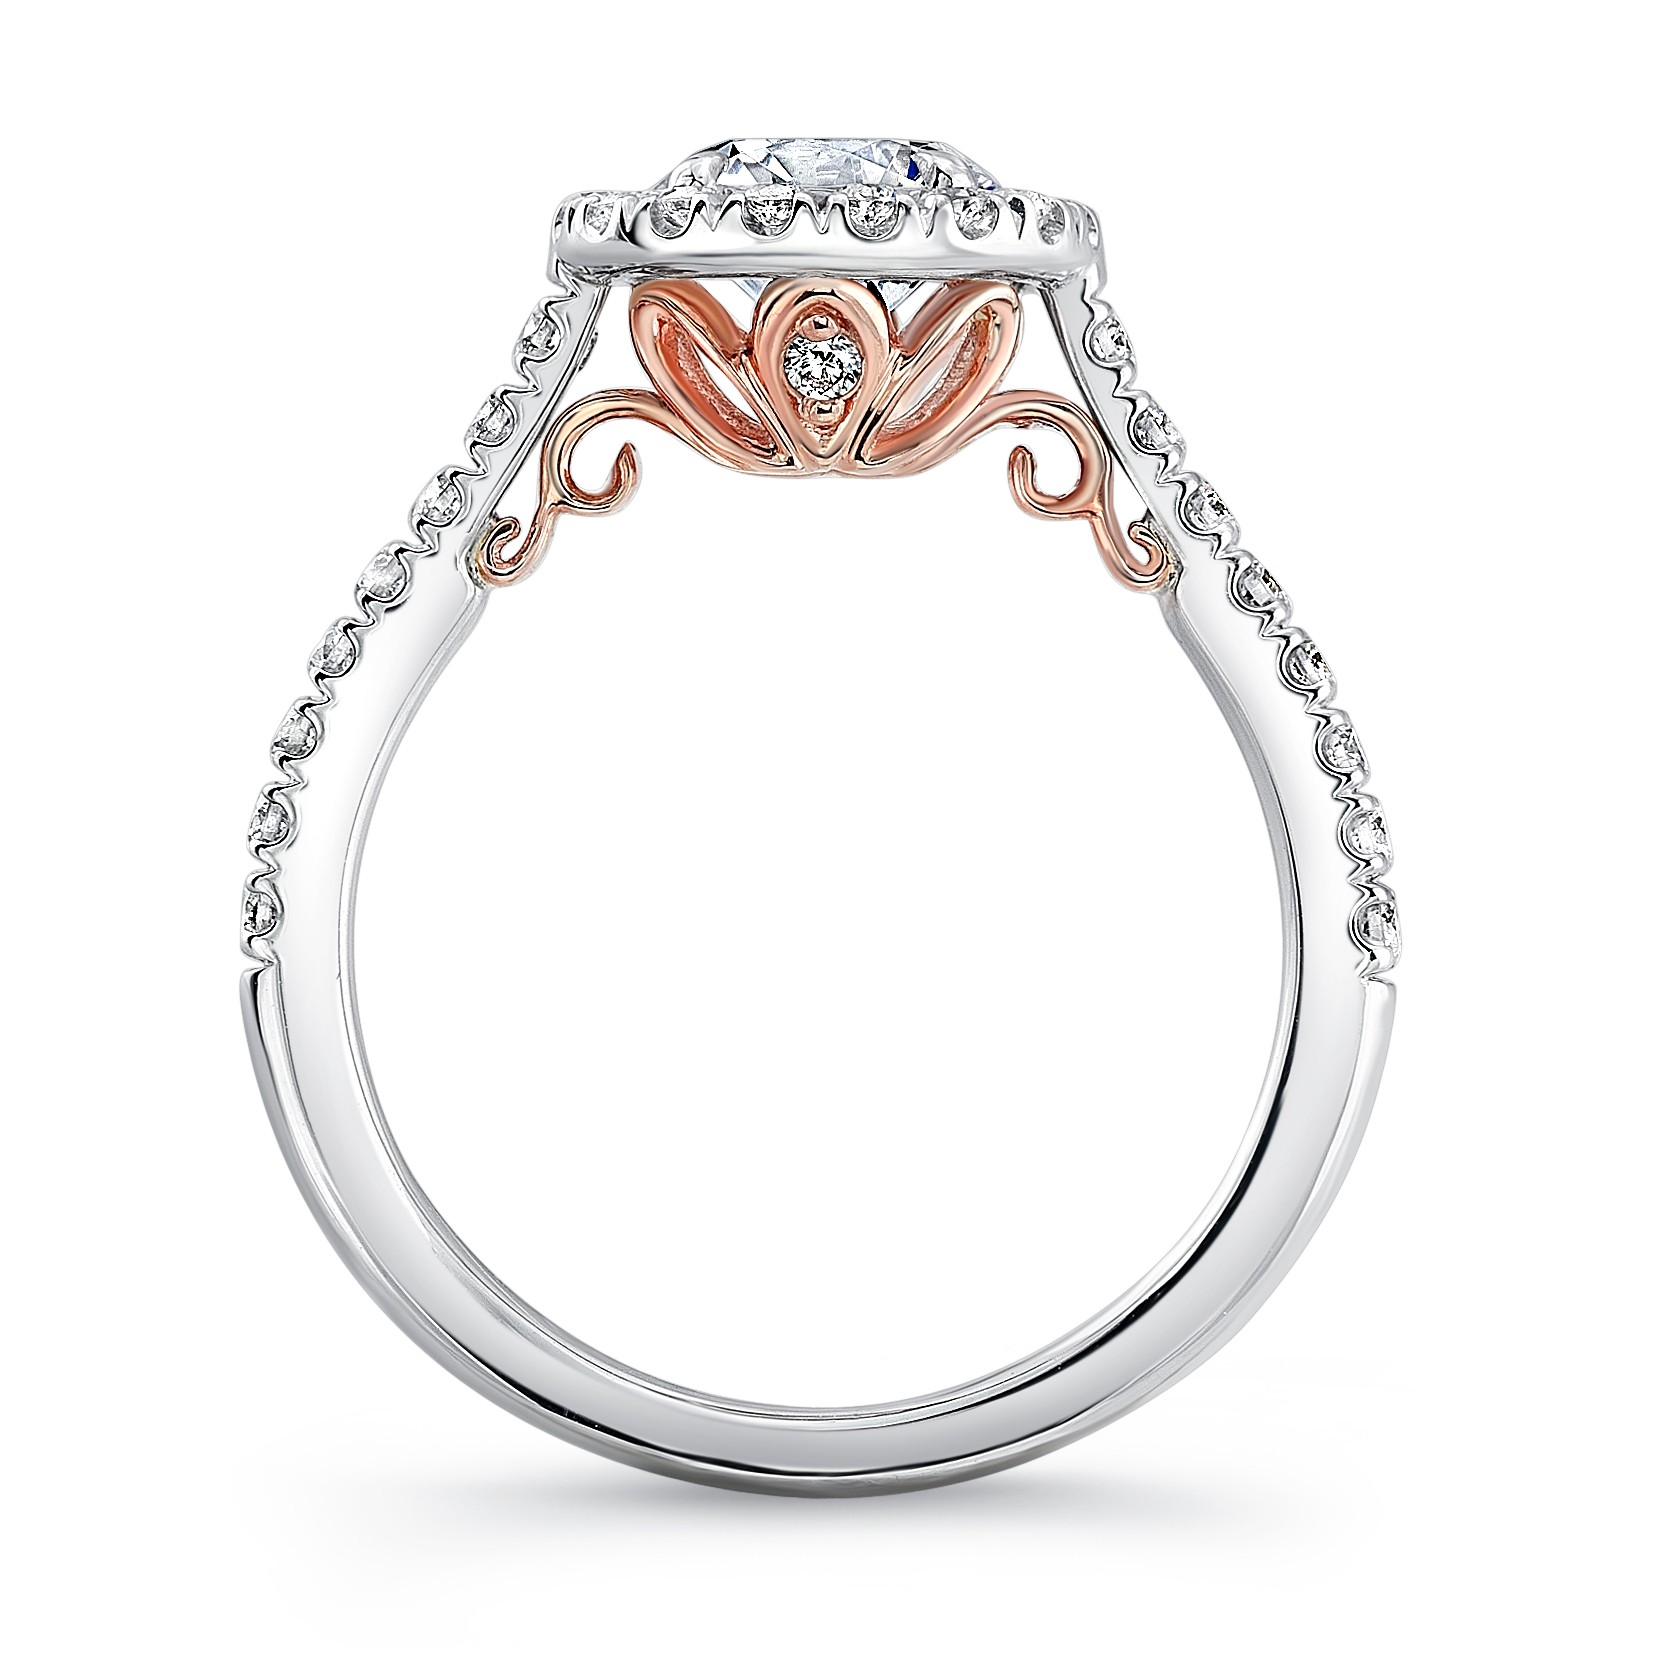 "Uneek ""Fiorire"" Oval Diamond Halo Engagement Ring with Pave Shank"